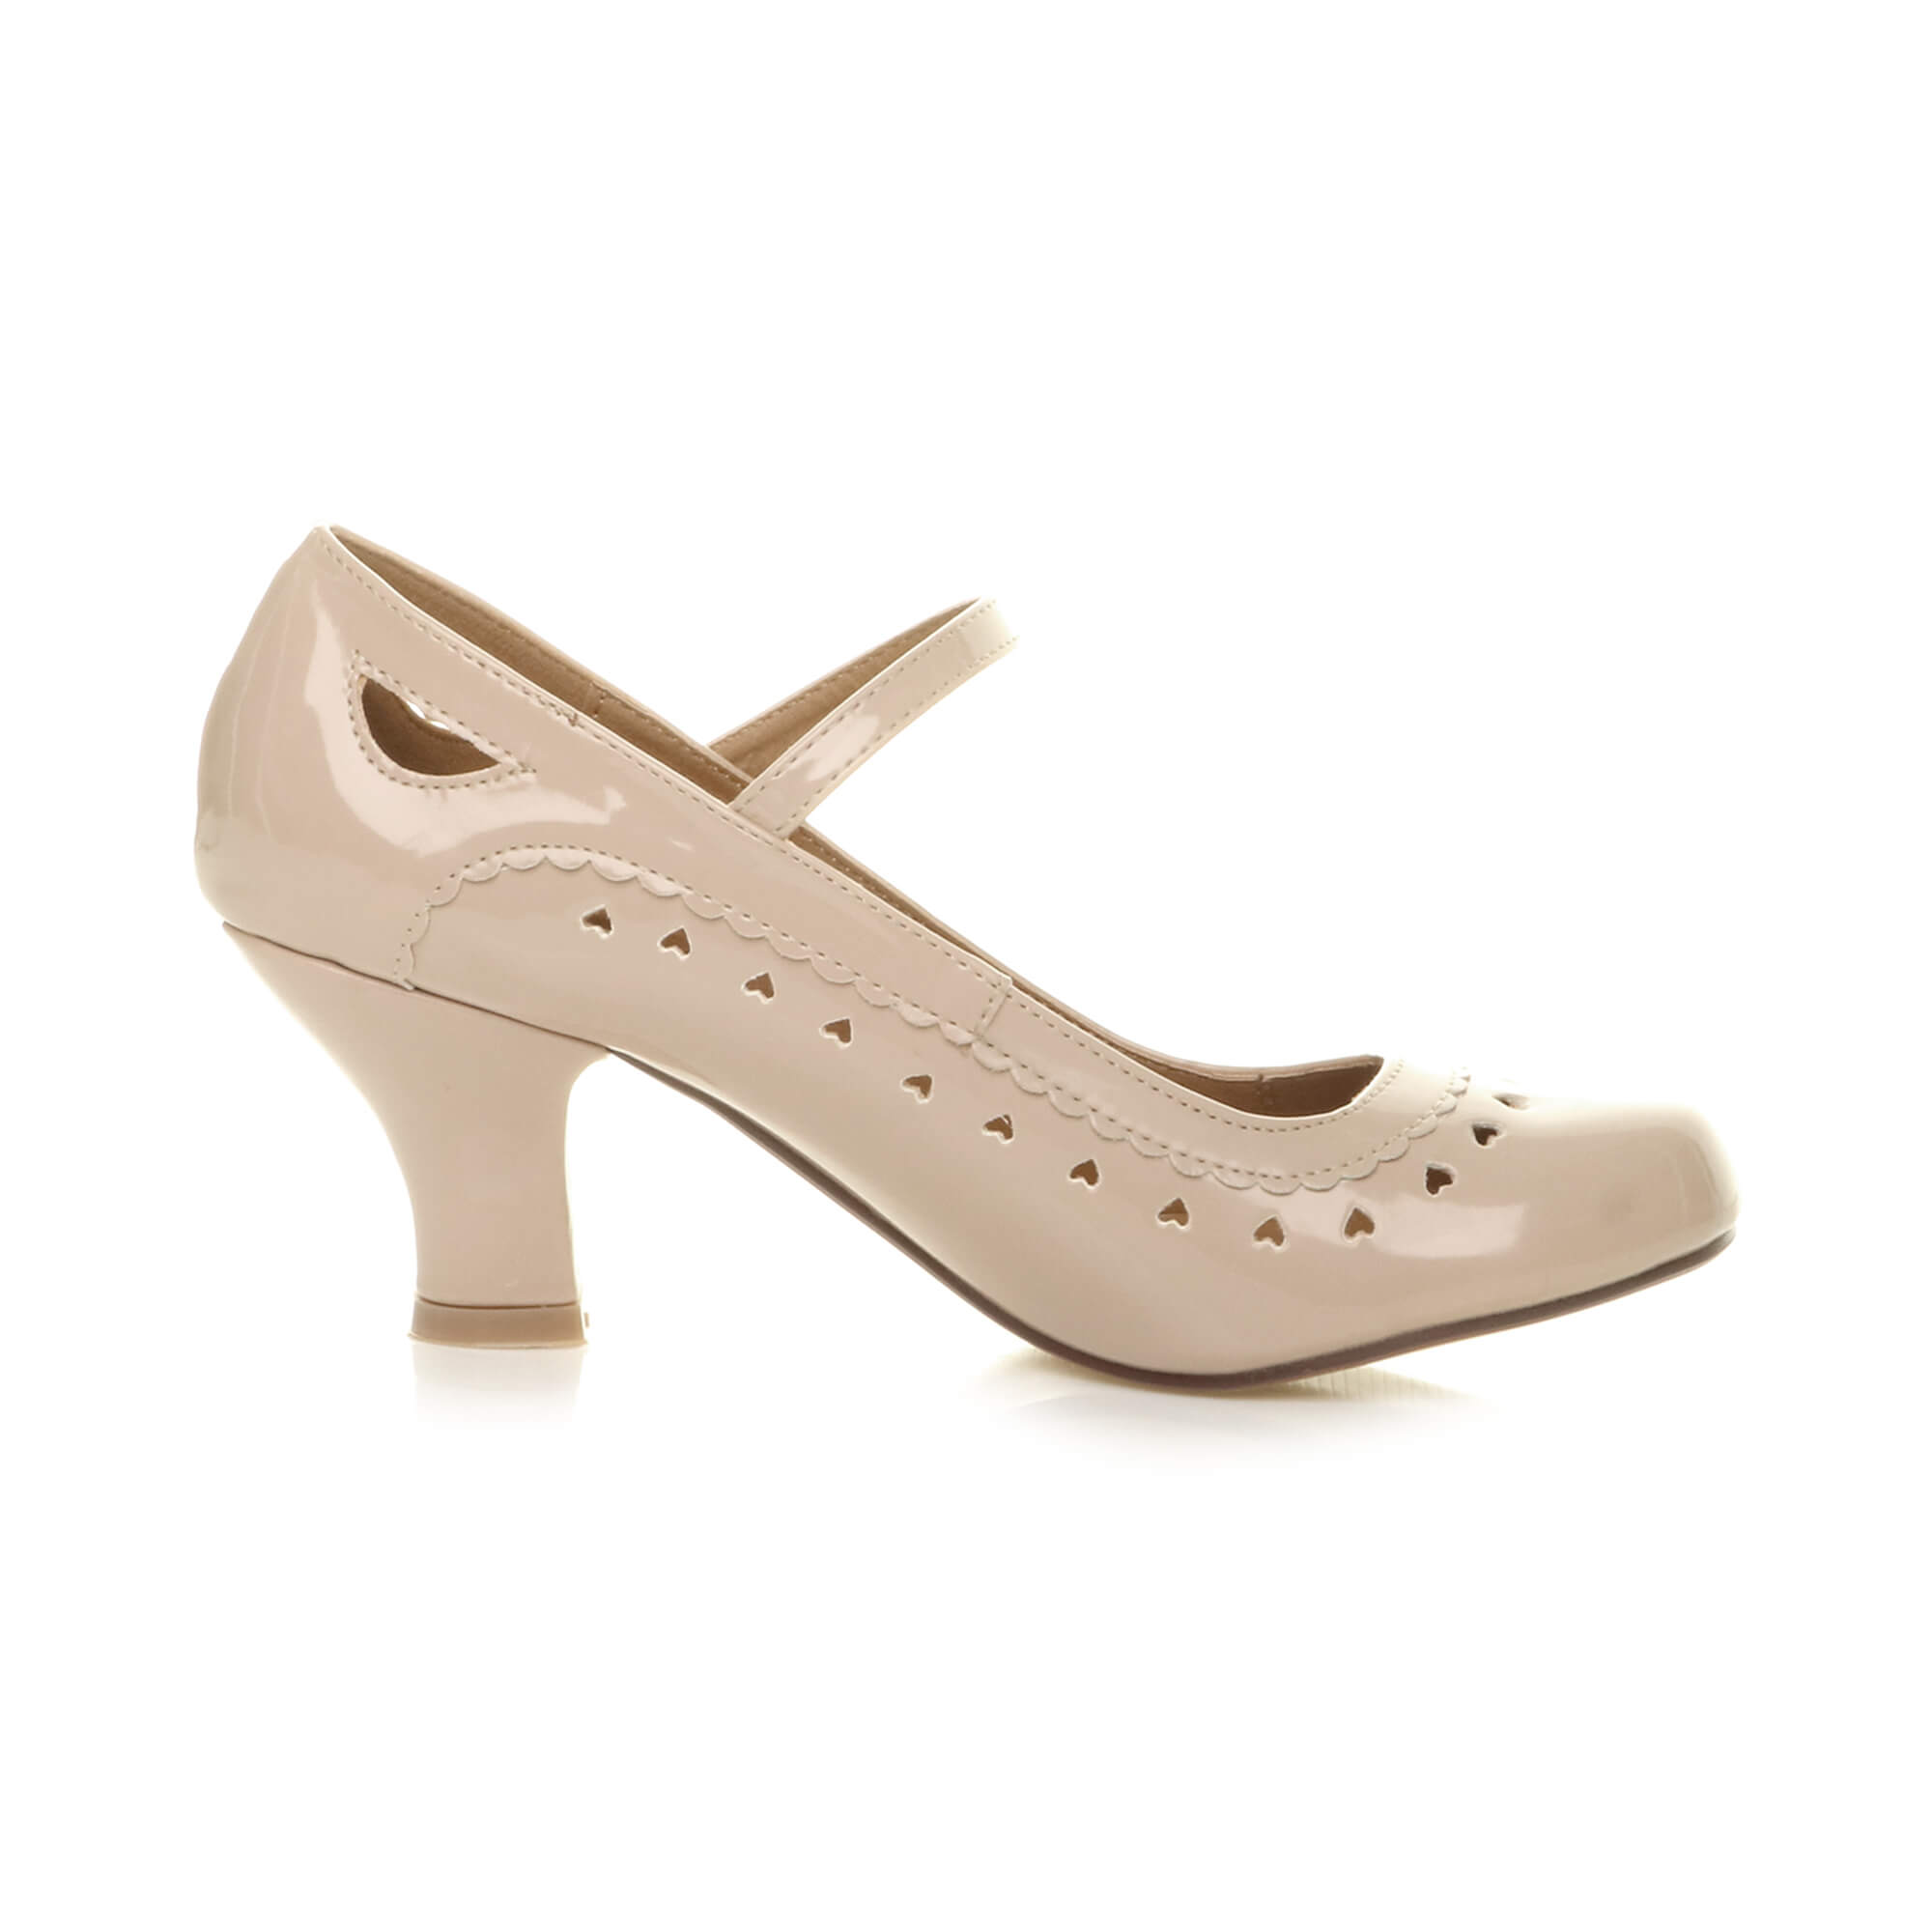 Chase And Chloe Shoes Uk